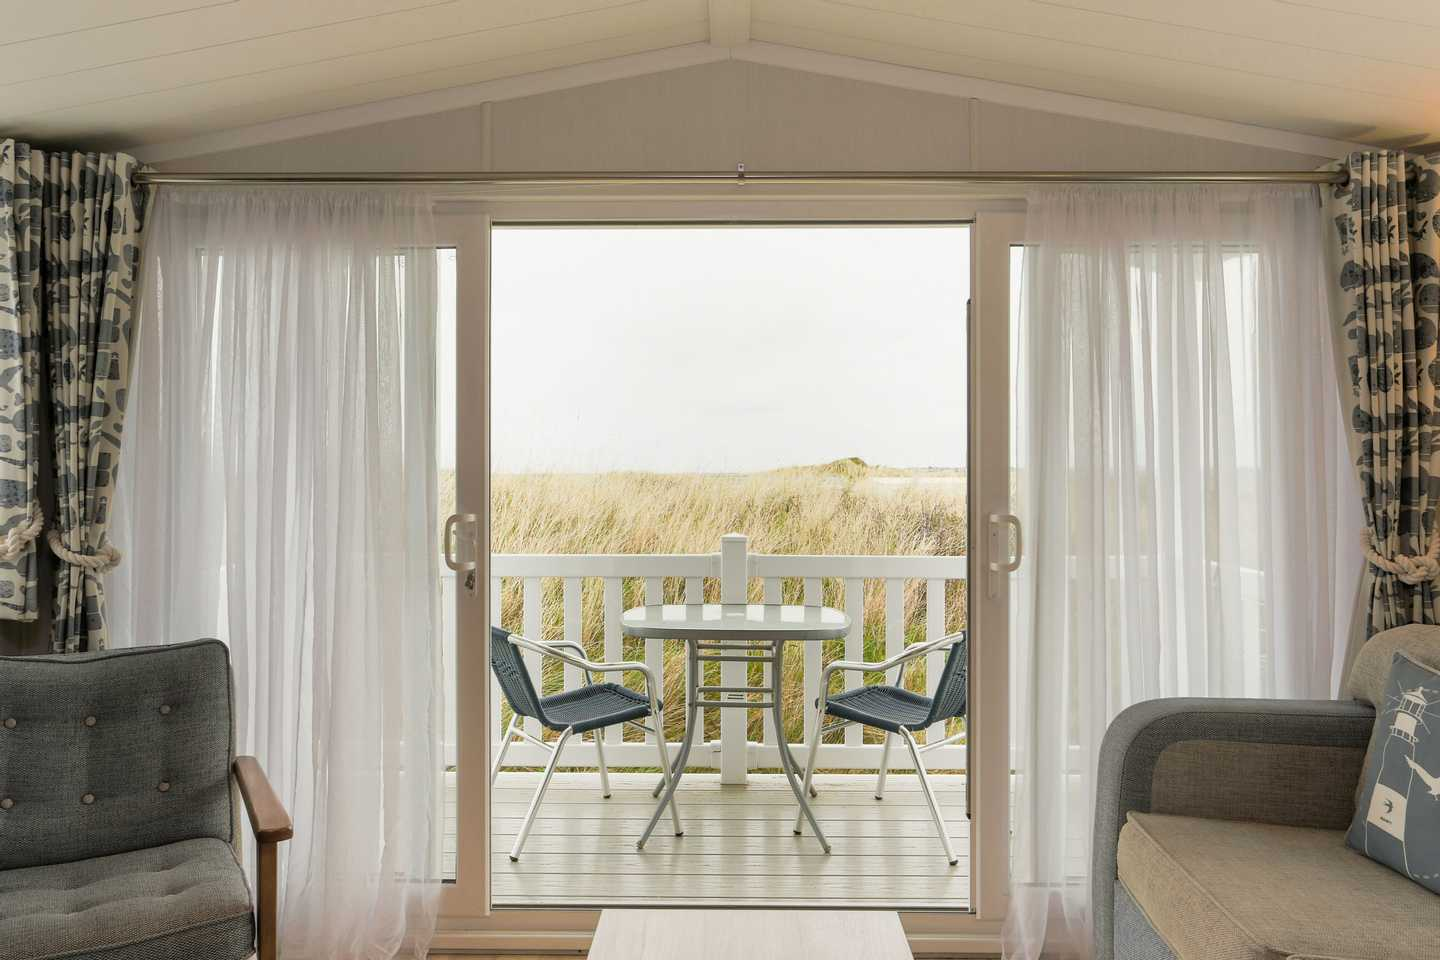 A representation of a Platinum with decking decking area view from inside